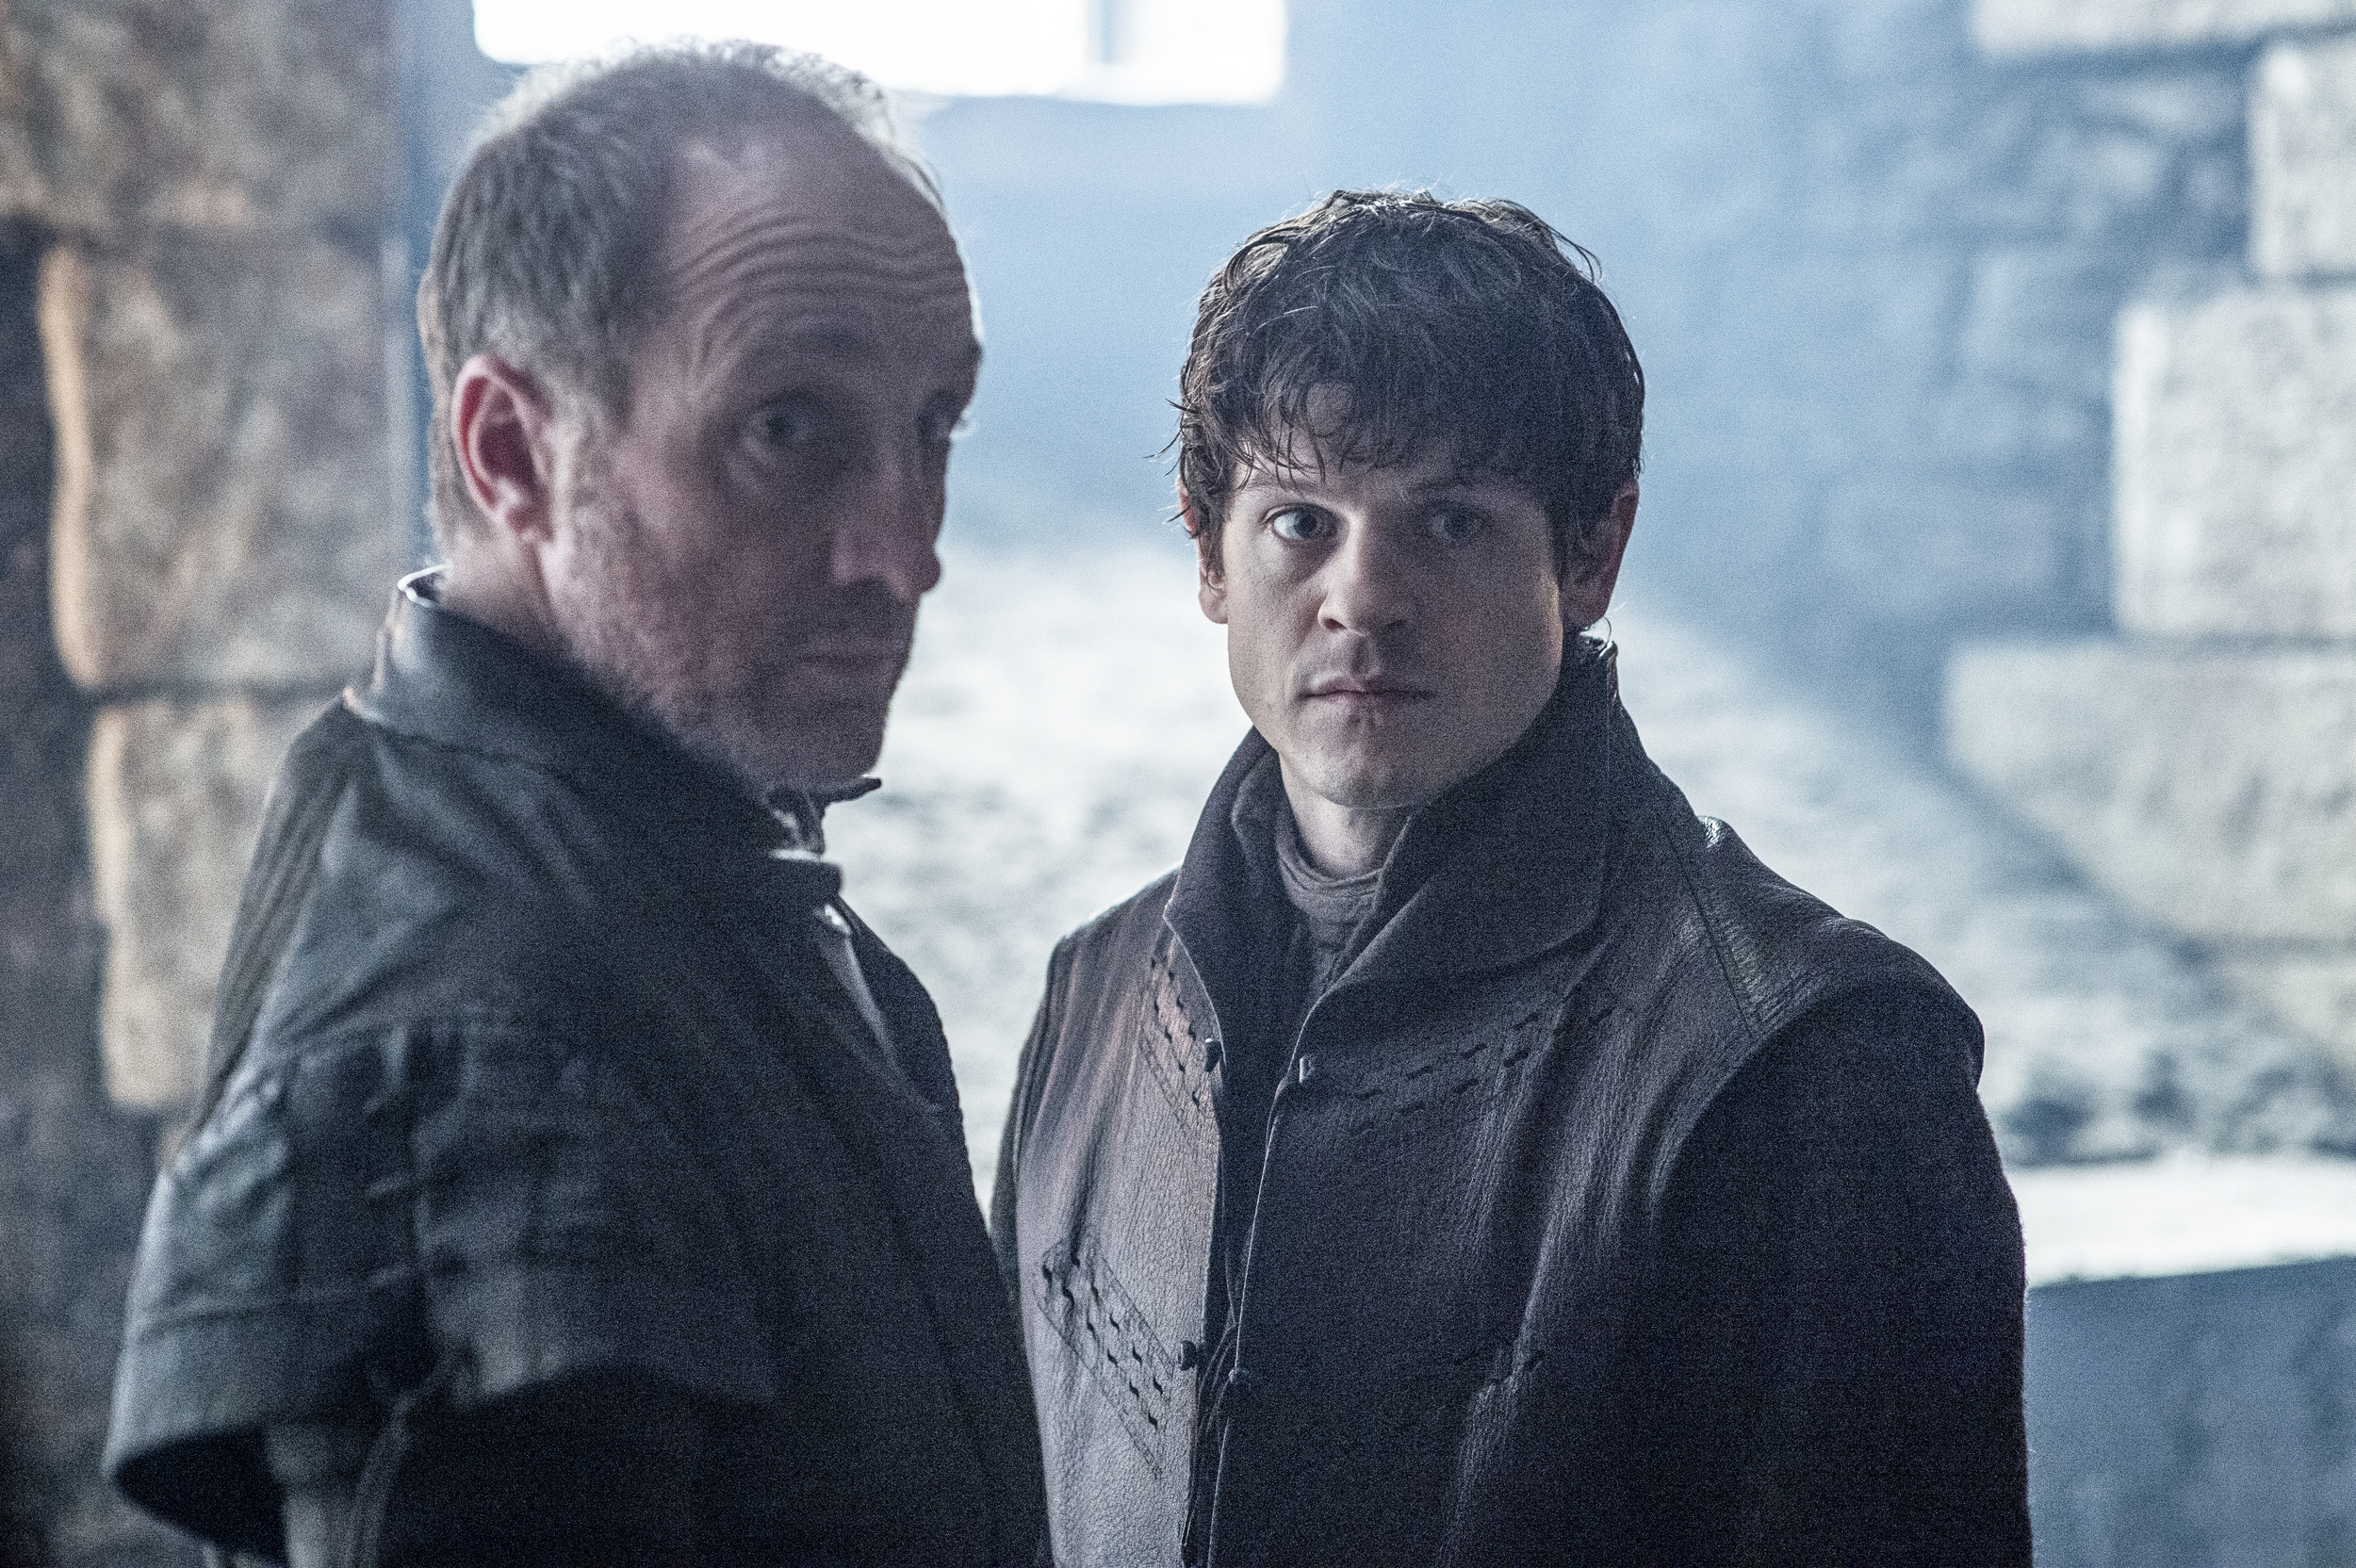 game of thrones season 6 photos, roose bolton, ramsay bolton, snow